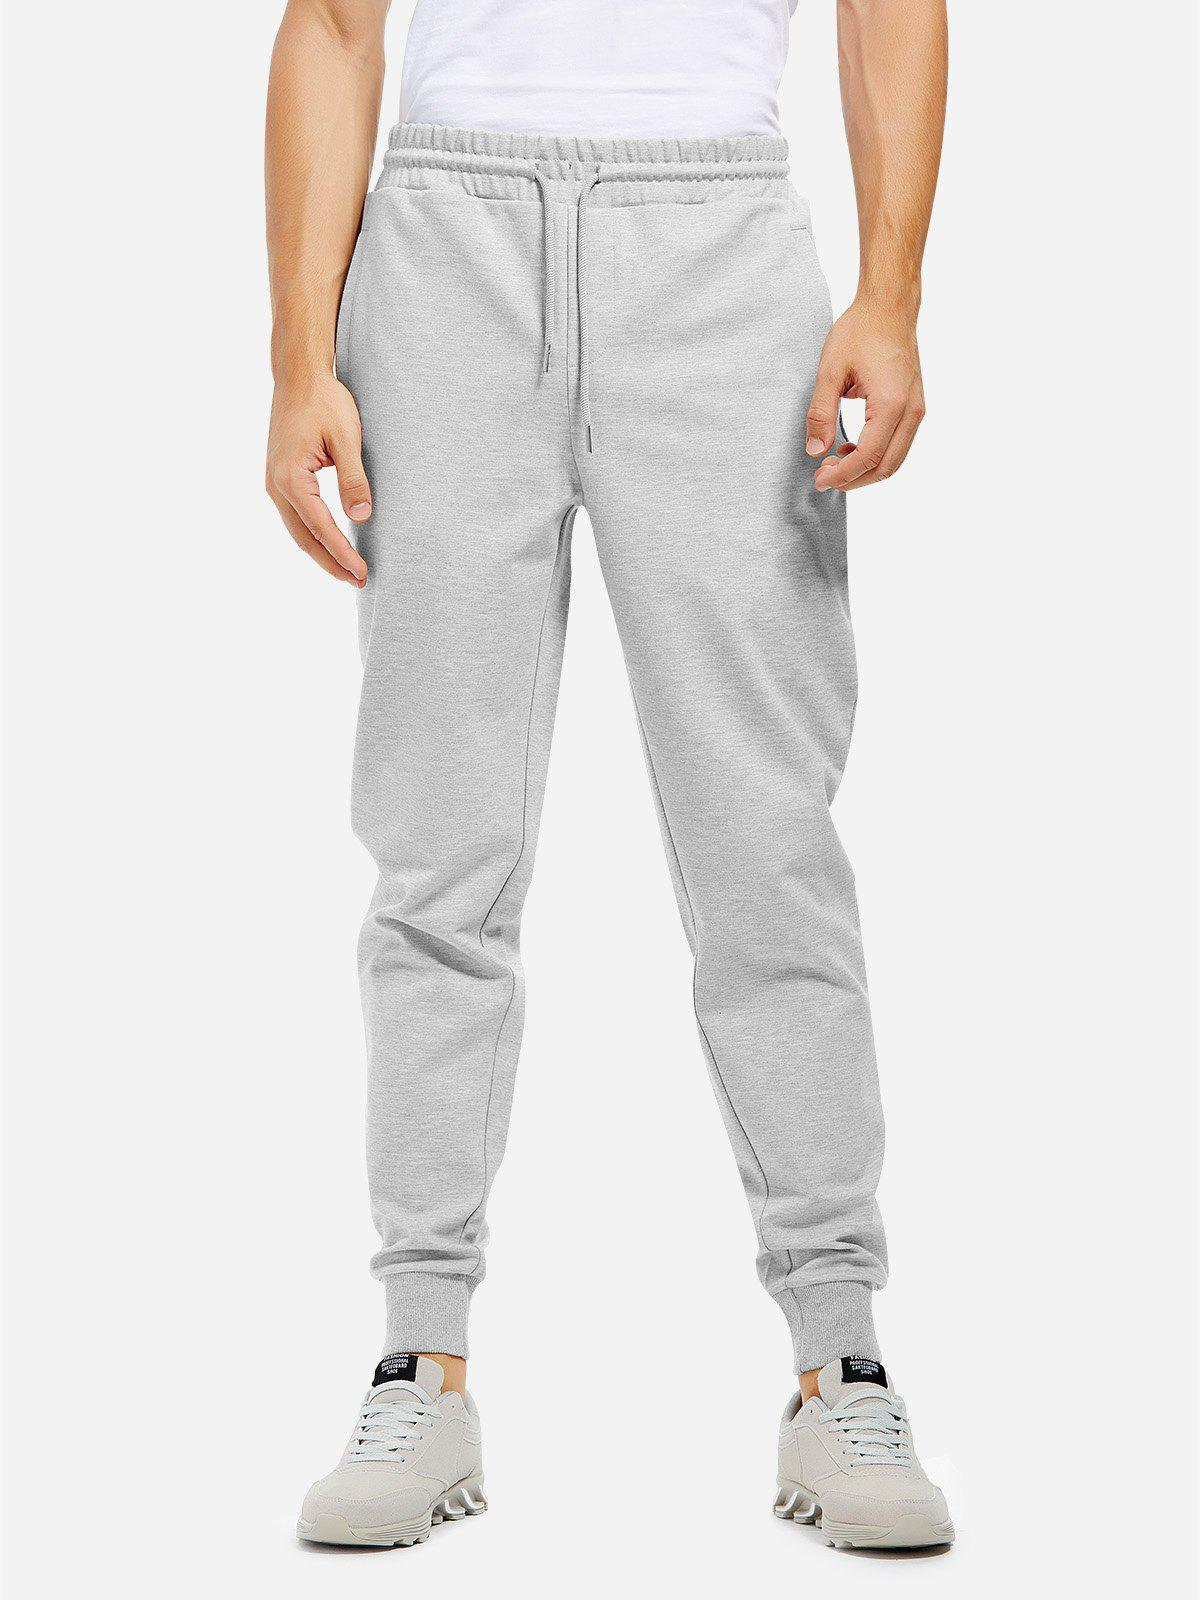 Latest Sweatpants